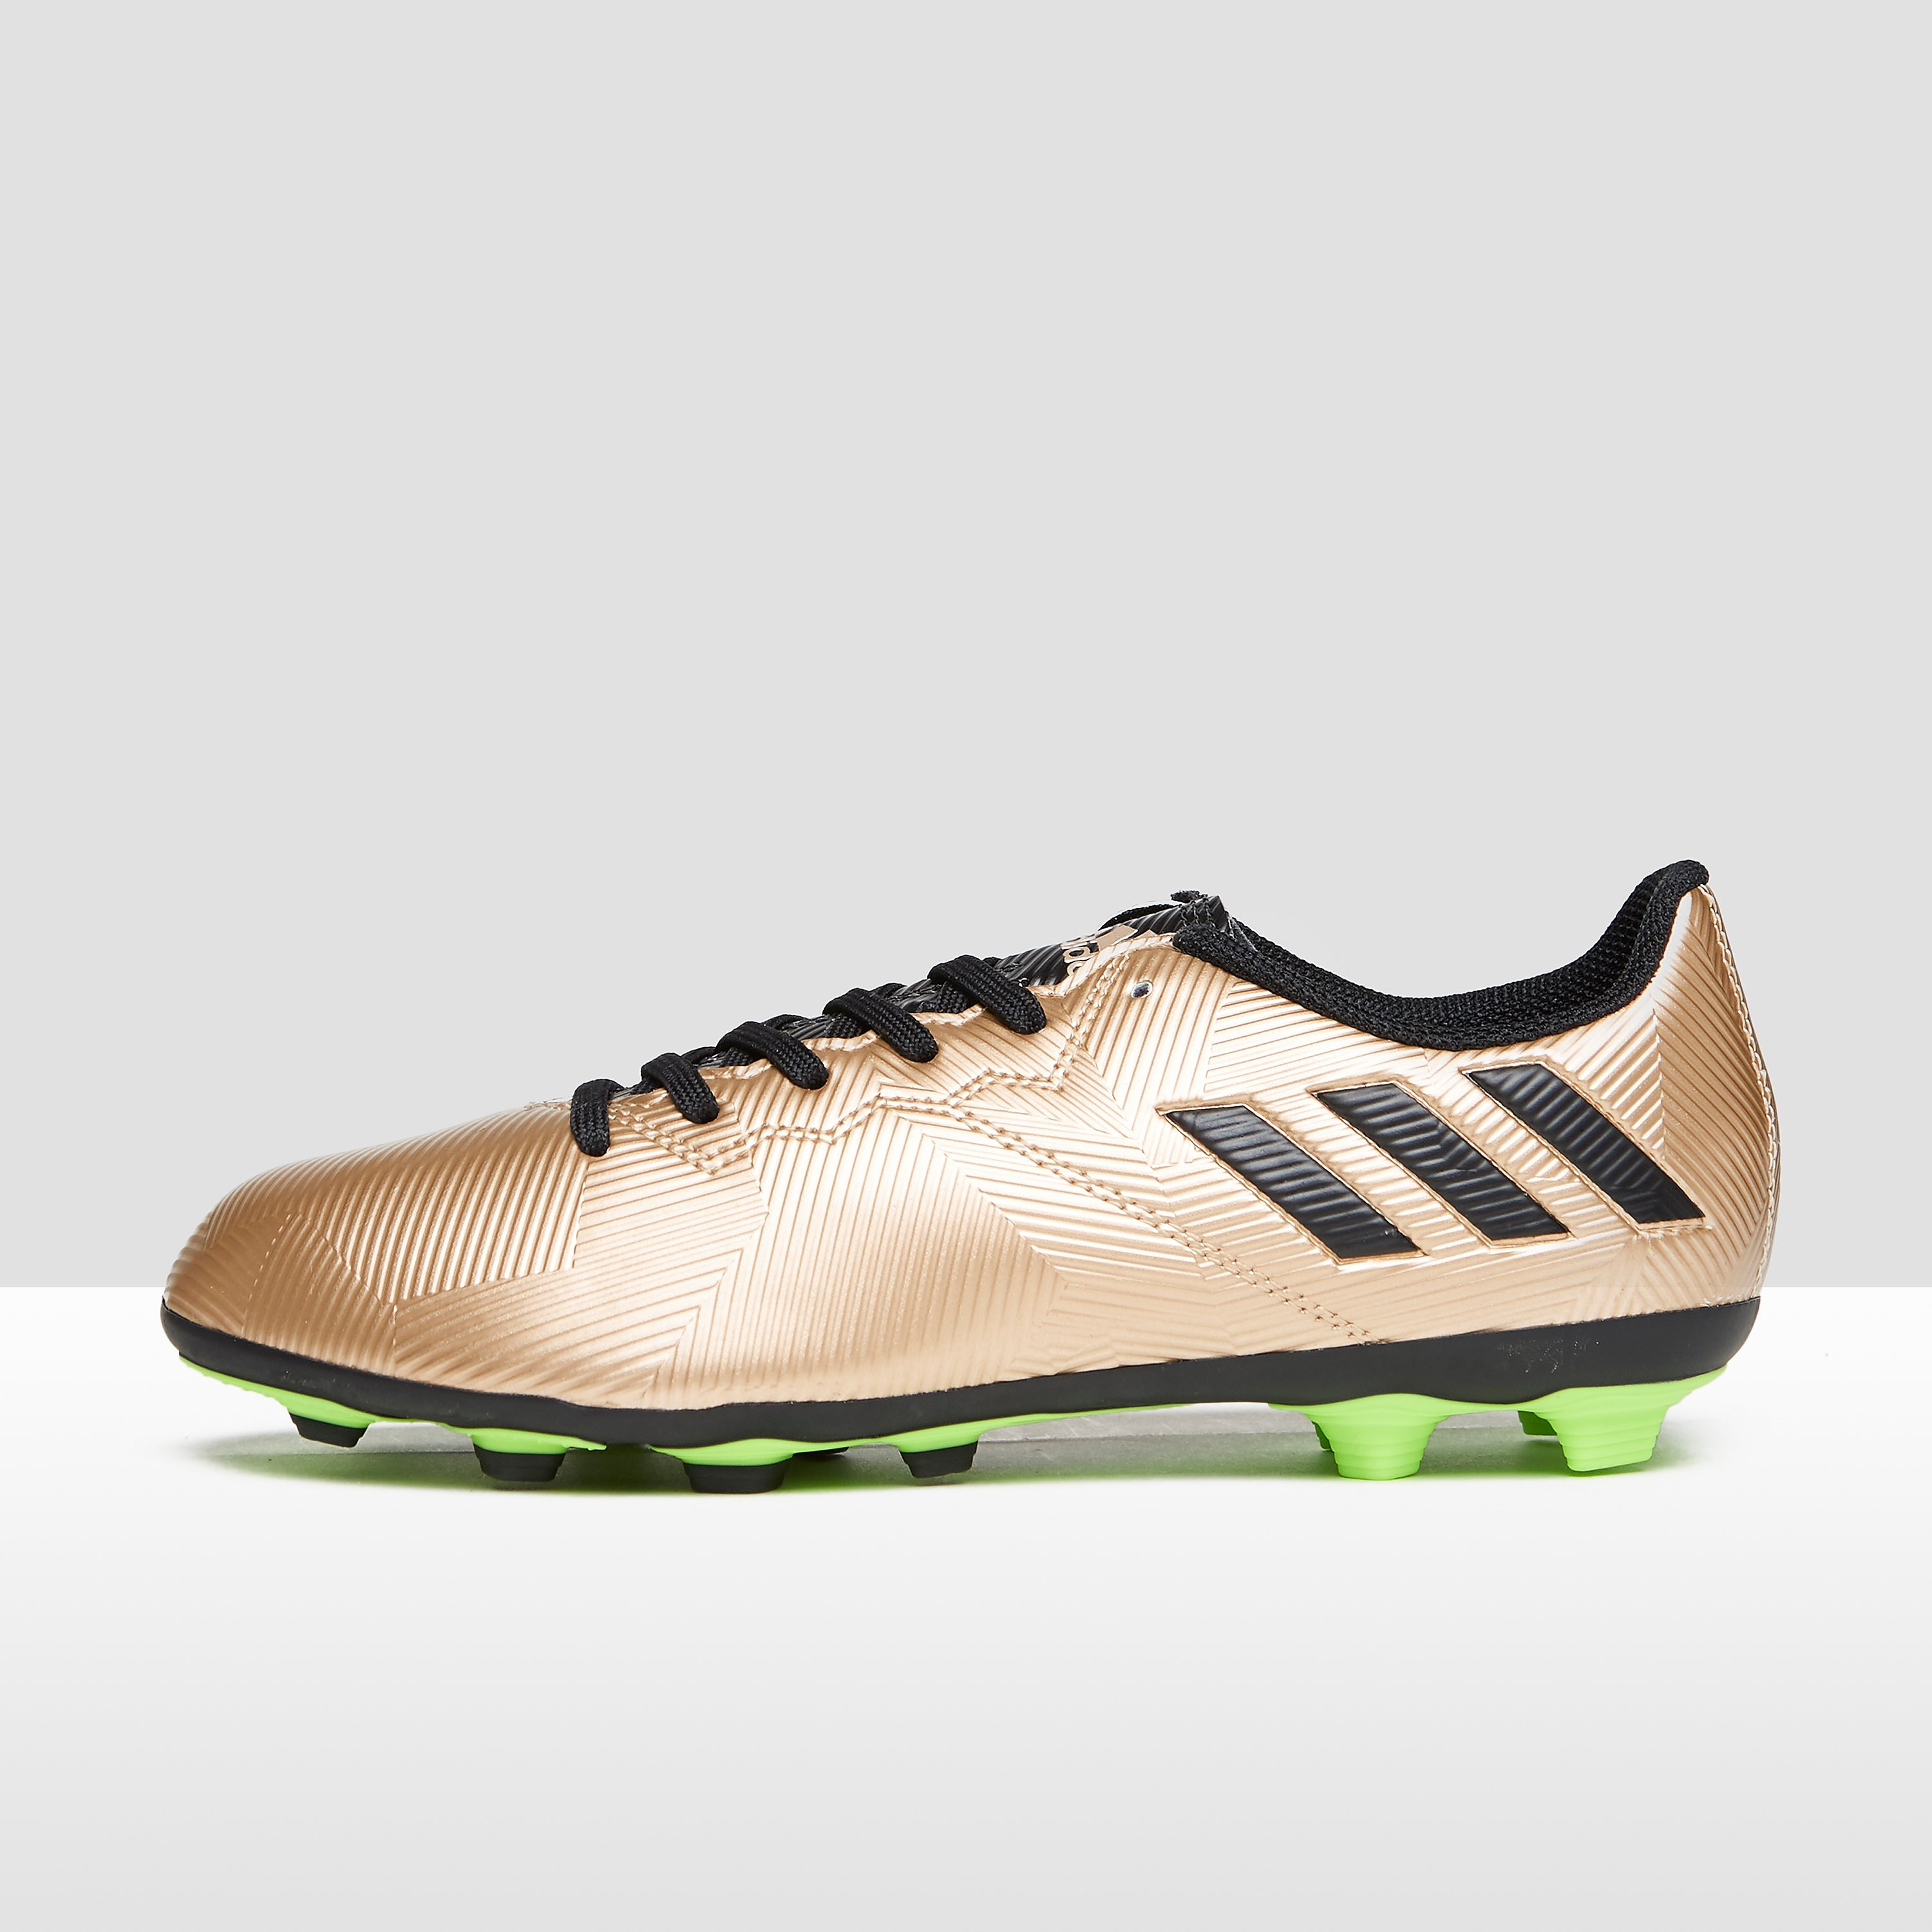 ADIDAS MESSI 16.4 FXG JR